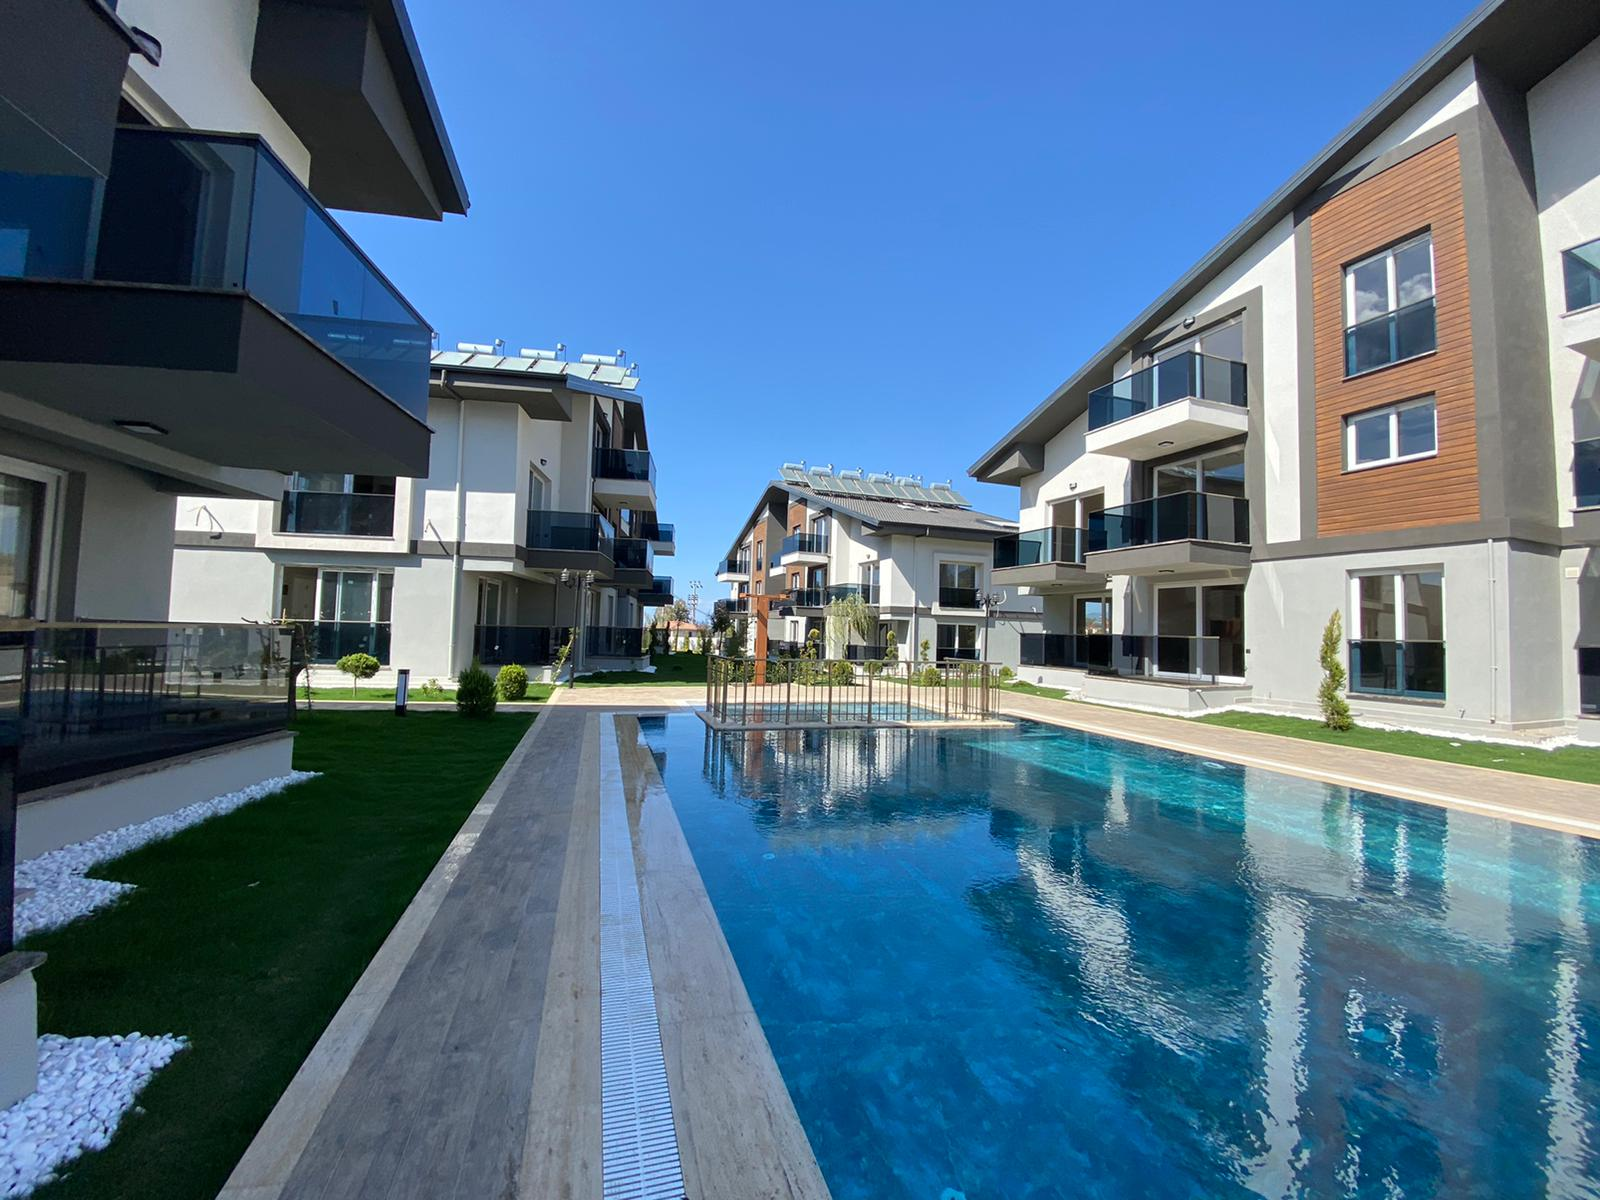 2 Bedroom Apartment in a Private Complex For Sale